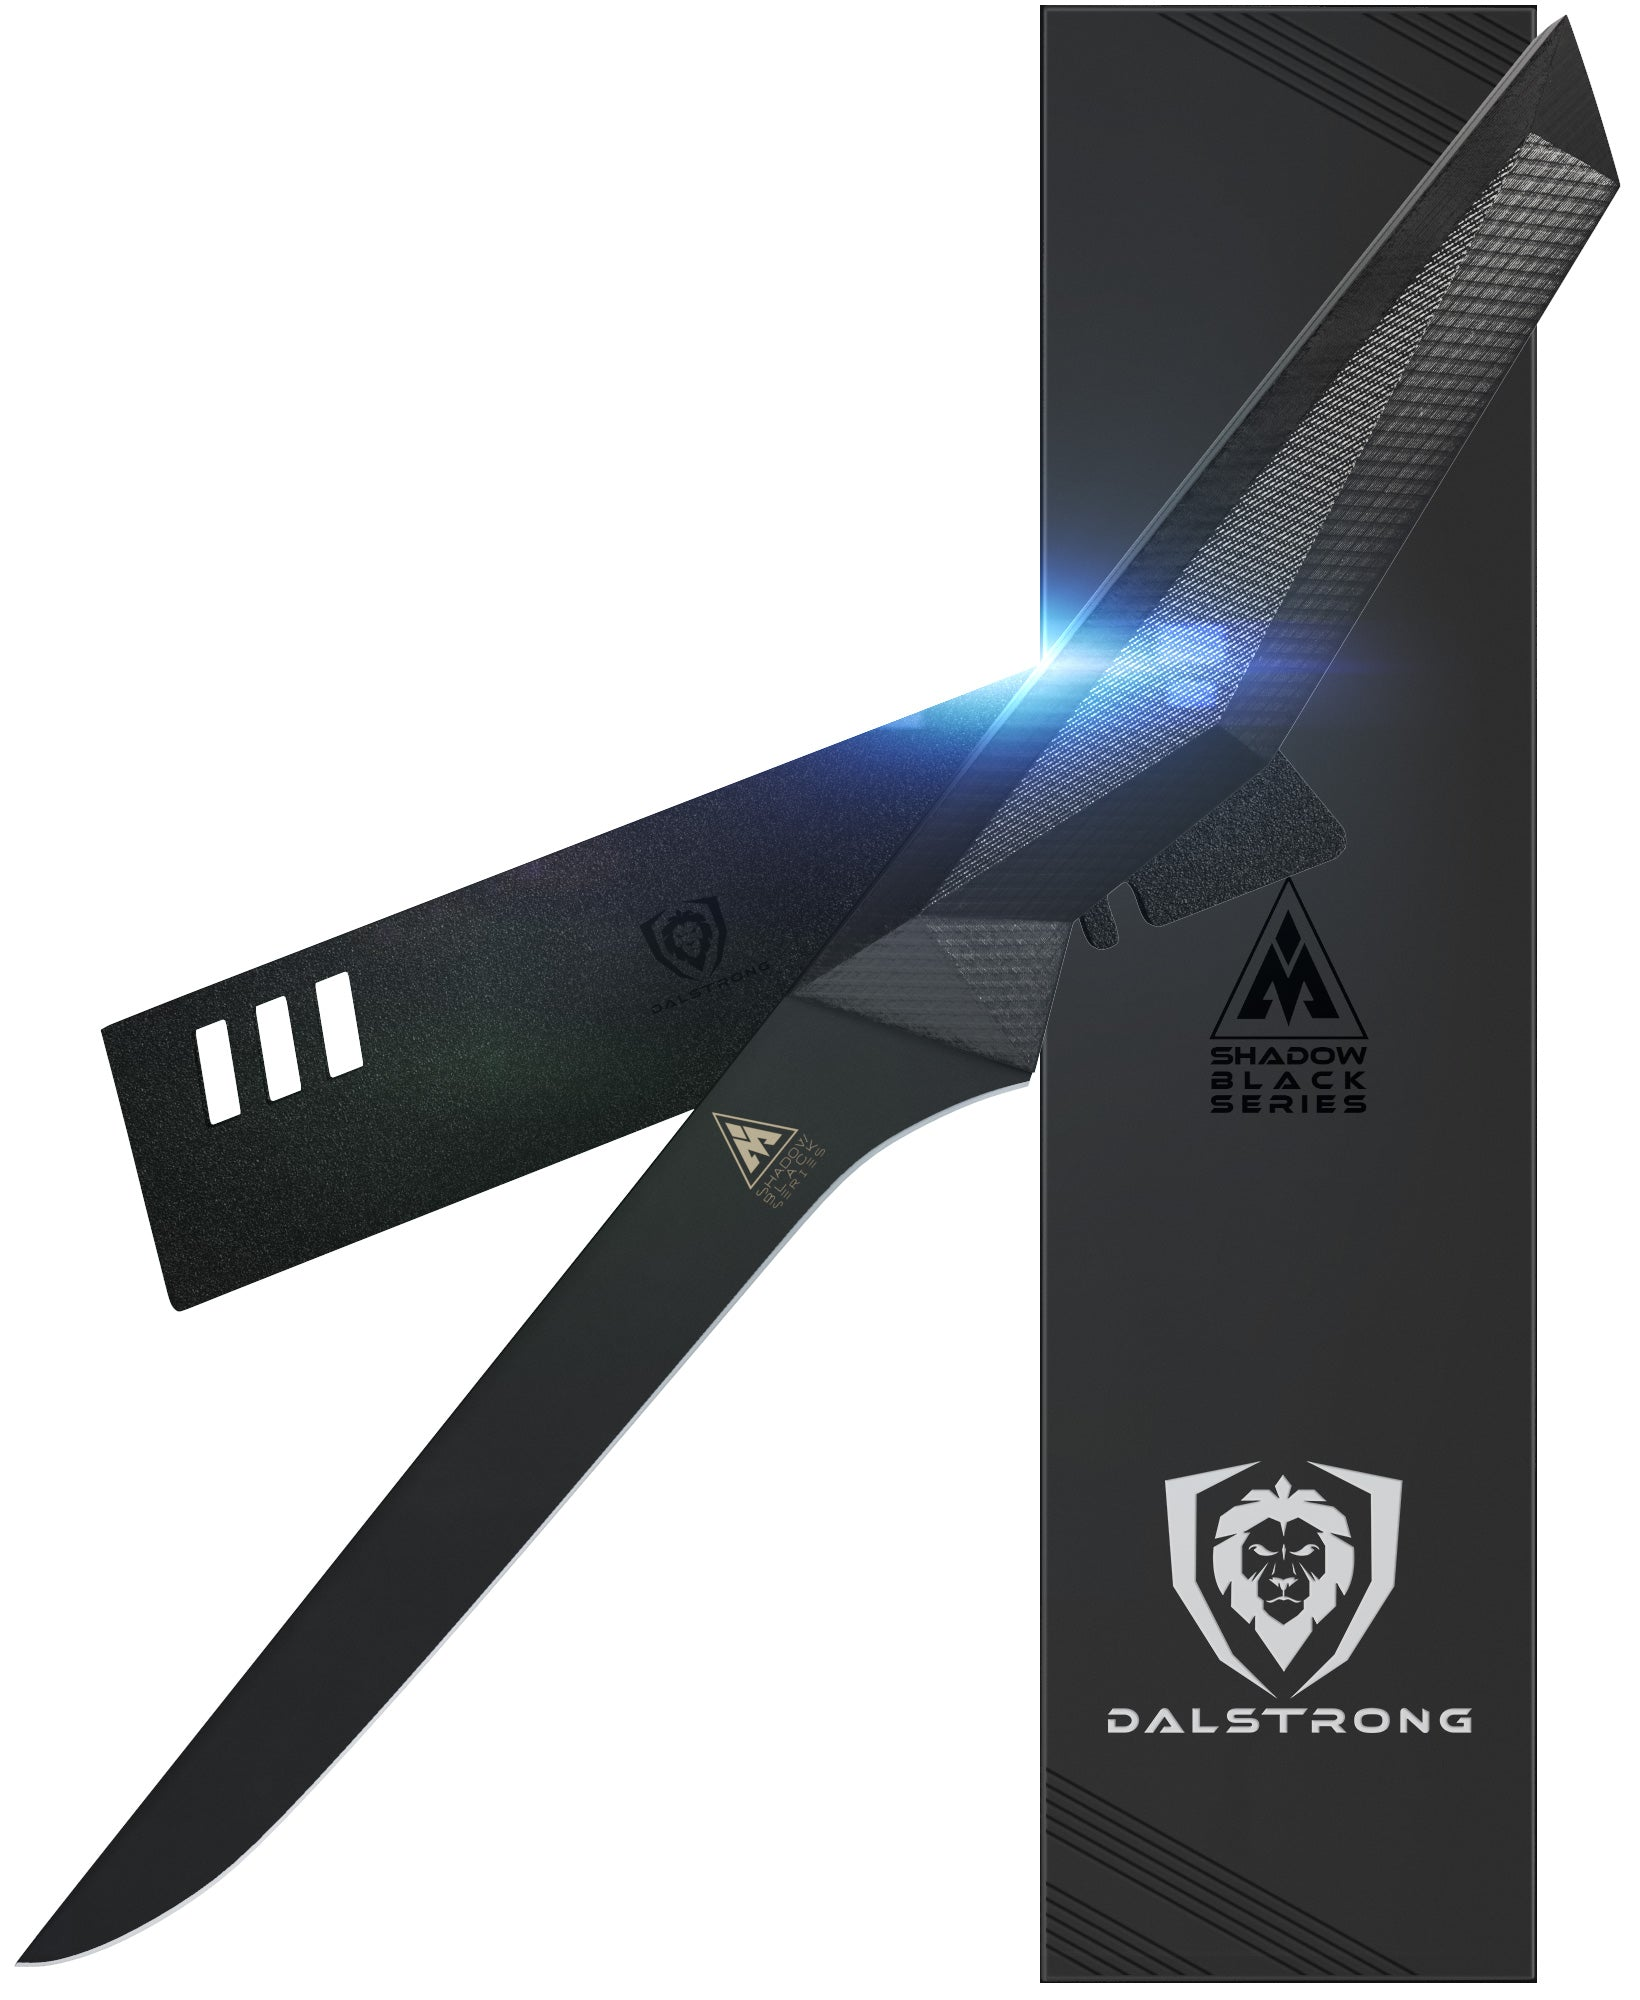 Shadow Black Series Straight Boning Knife